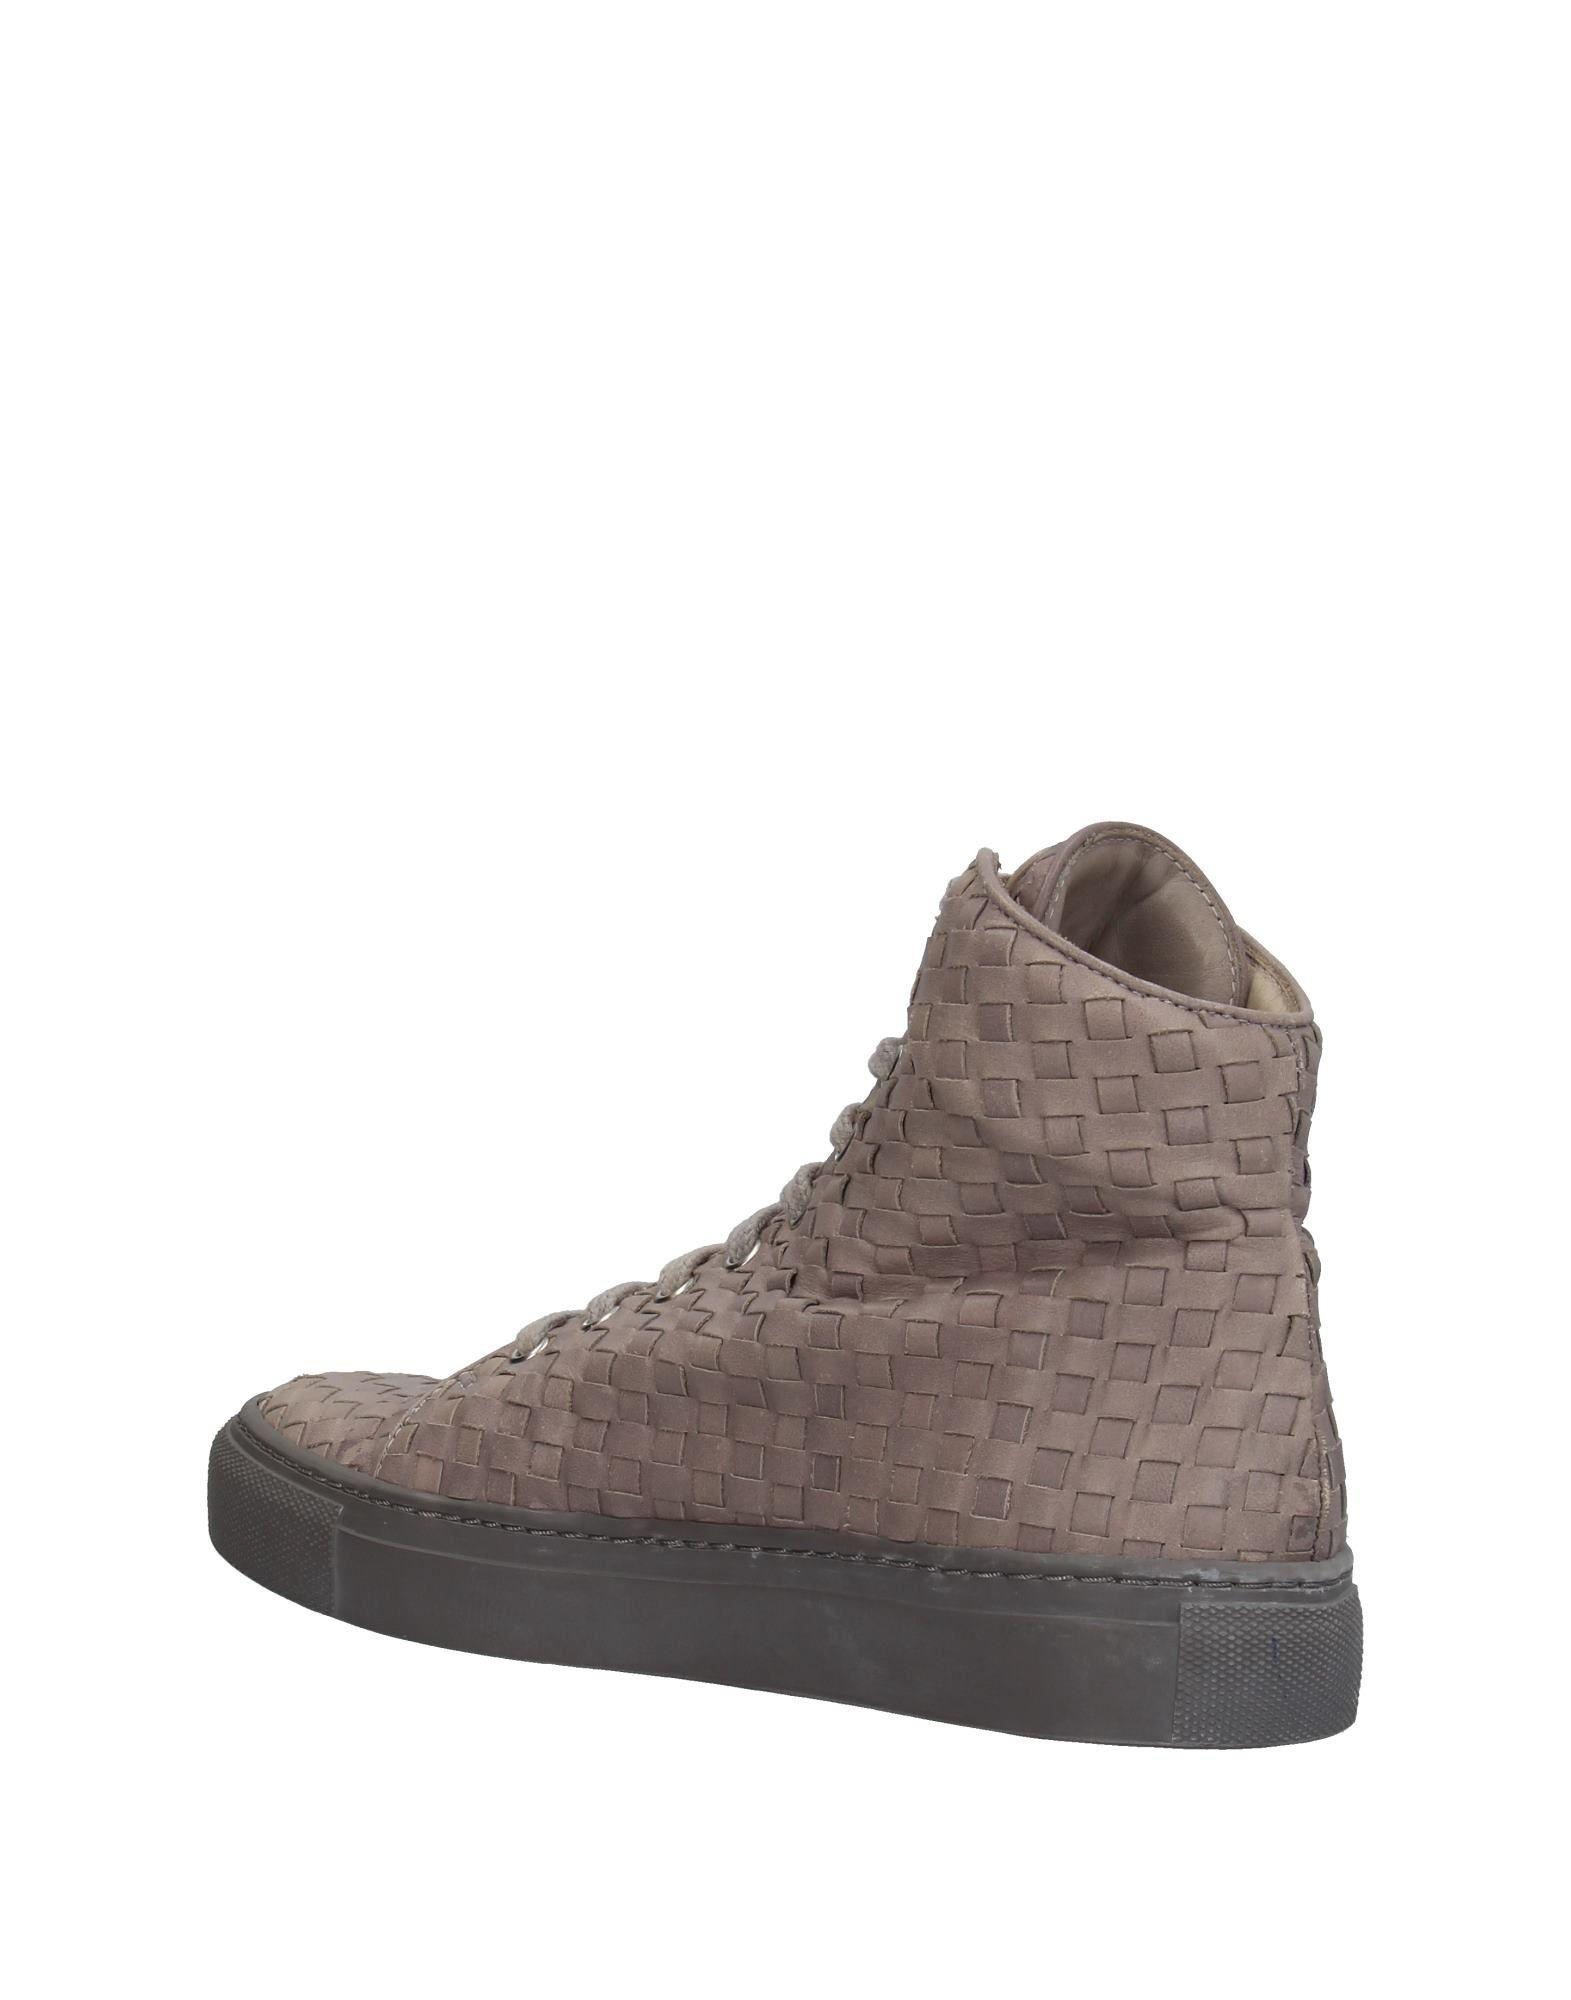 The Last Conspiracy Leather High-tops & Sneakers in Grey (Grey)